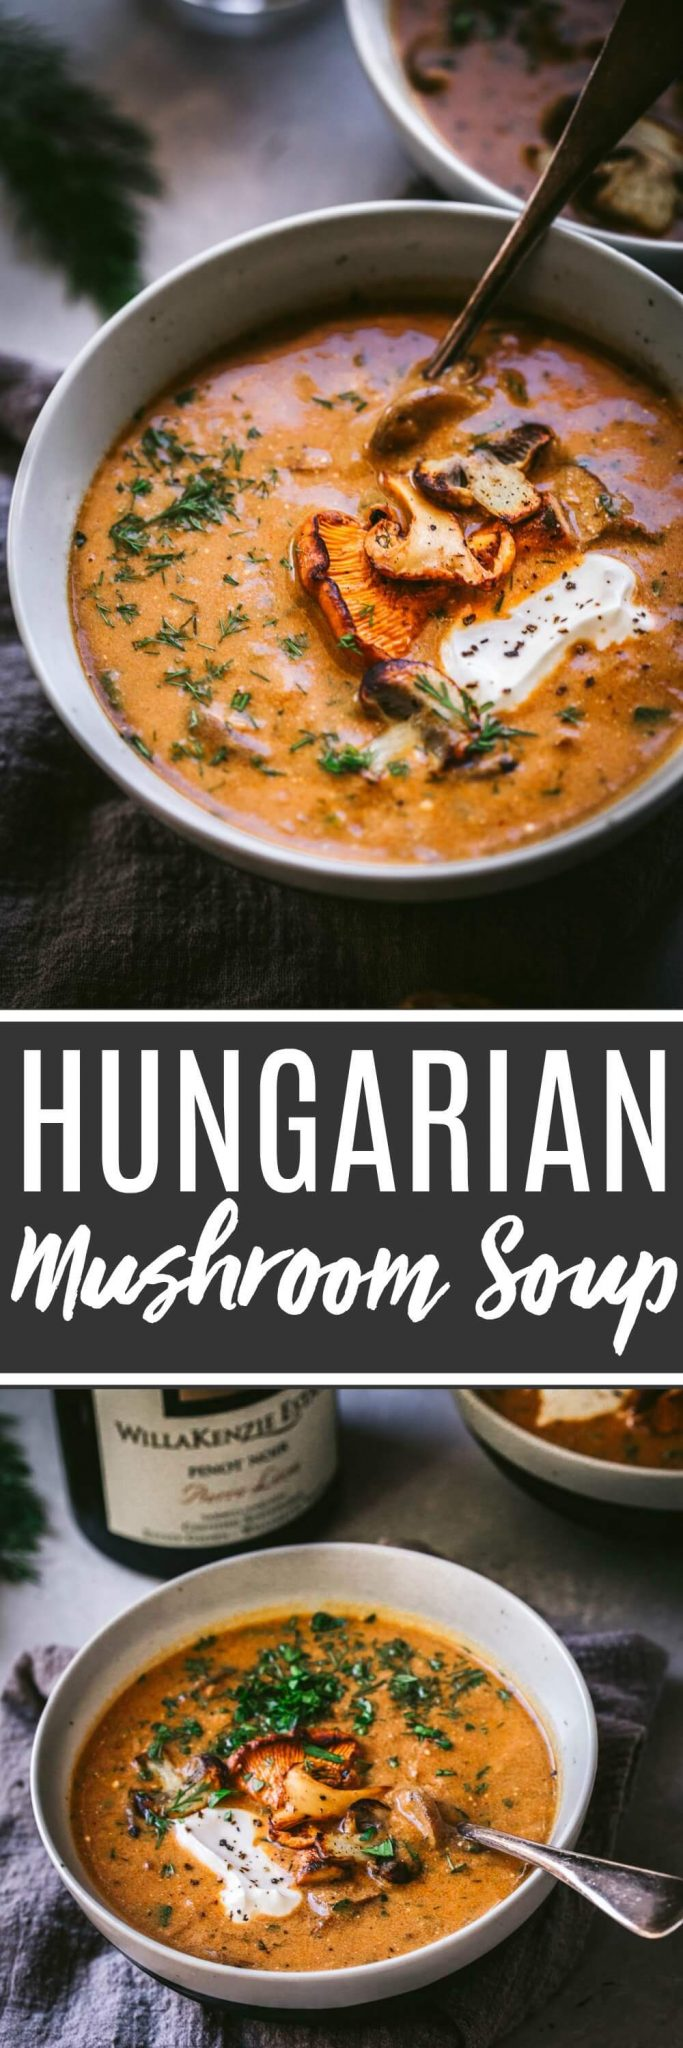 This Hungarian Mushroom Soup with Fresh Dill is rich, with hints of smokiness and a great umami flavor. It's the perfect bowl of soup to warm up with this season!